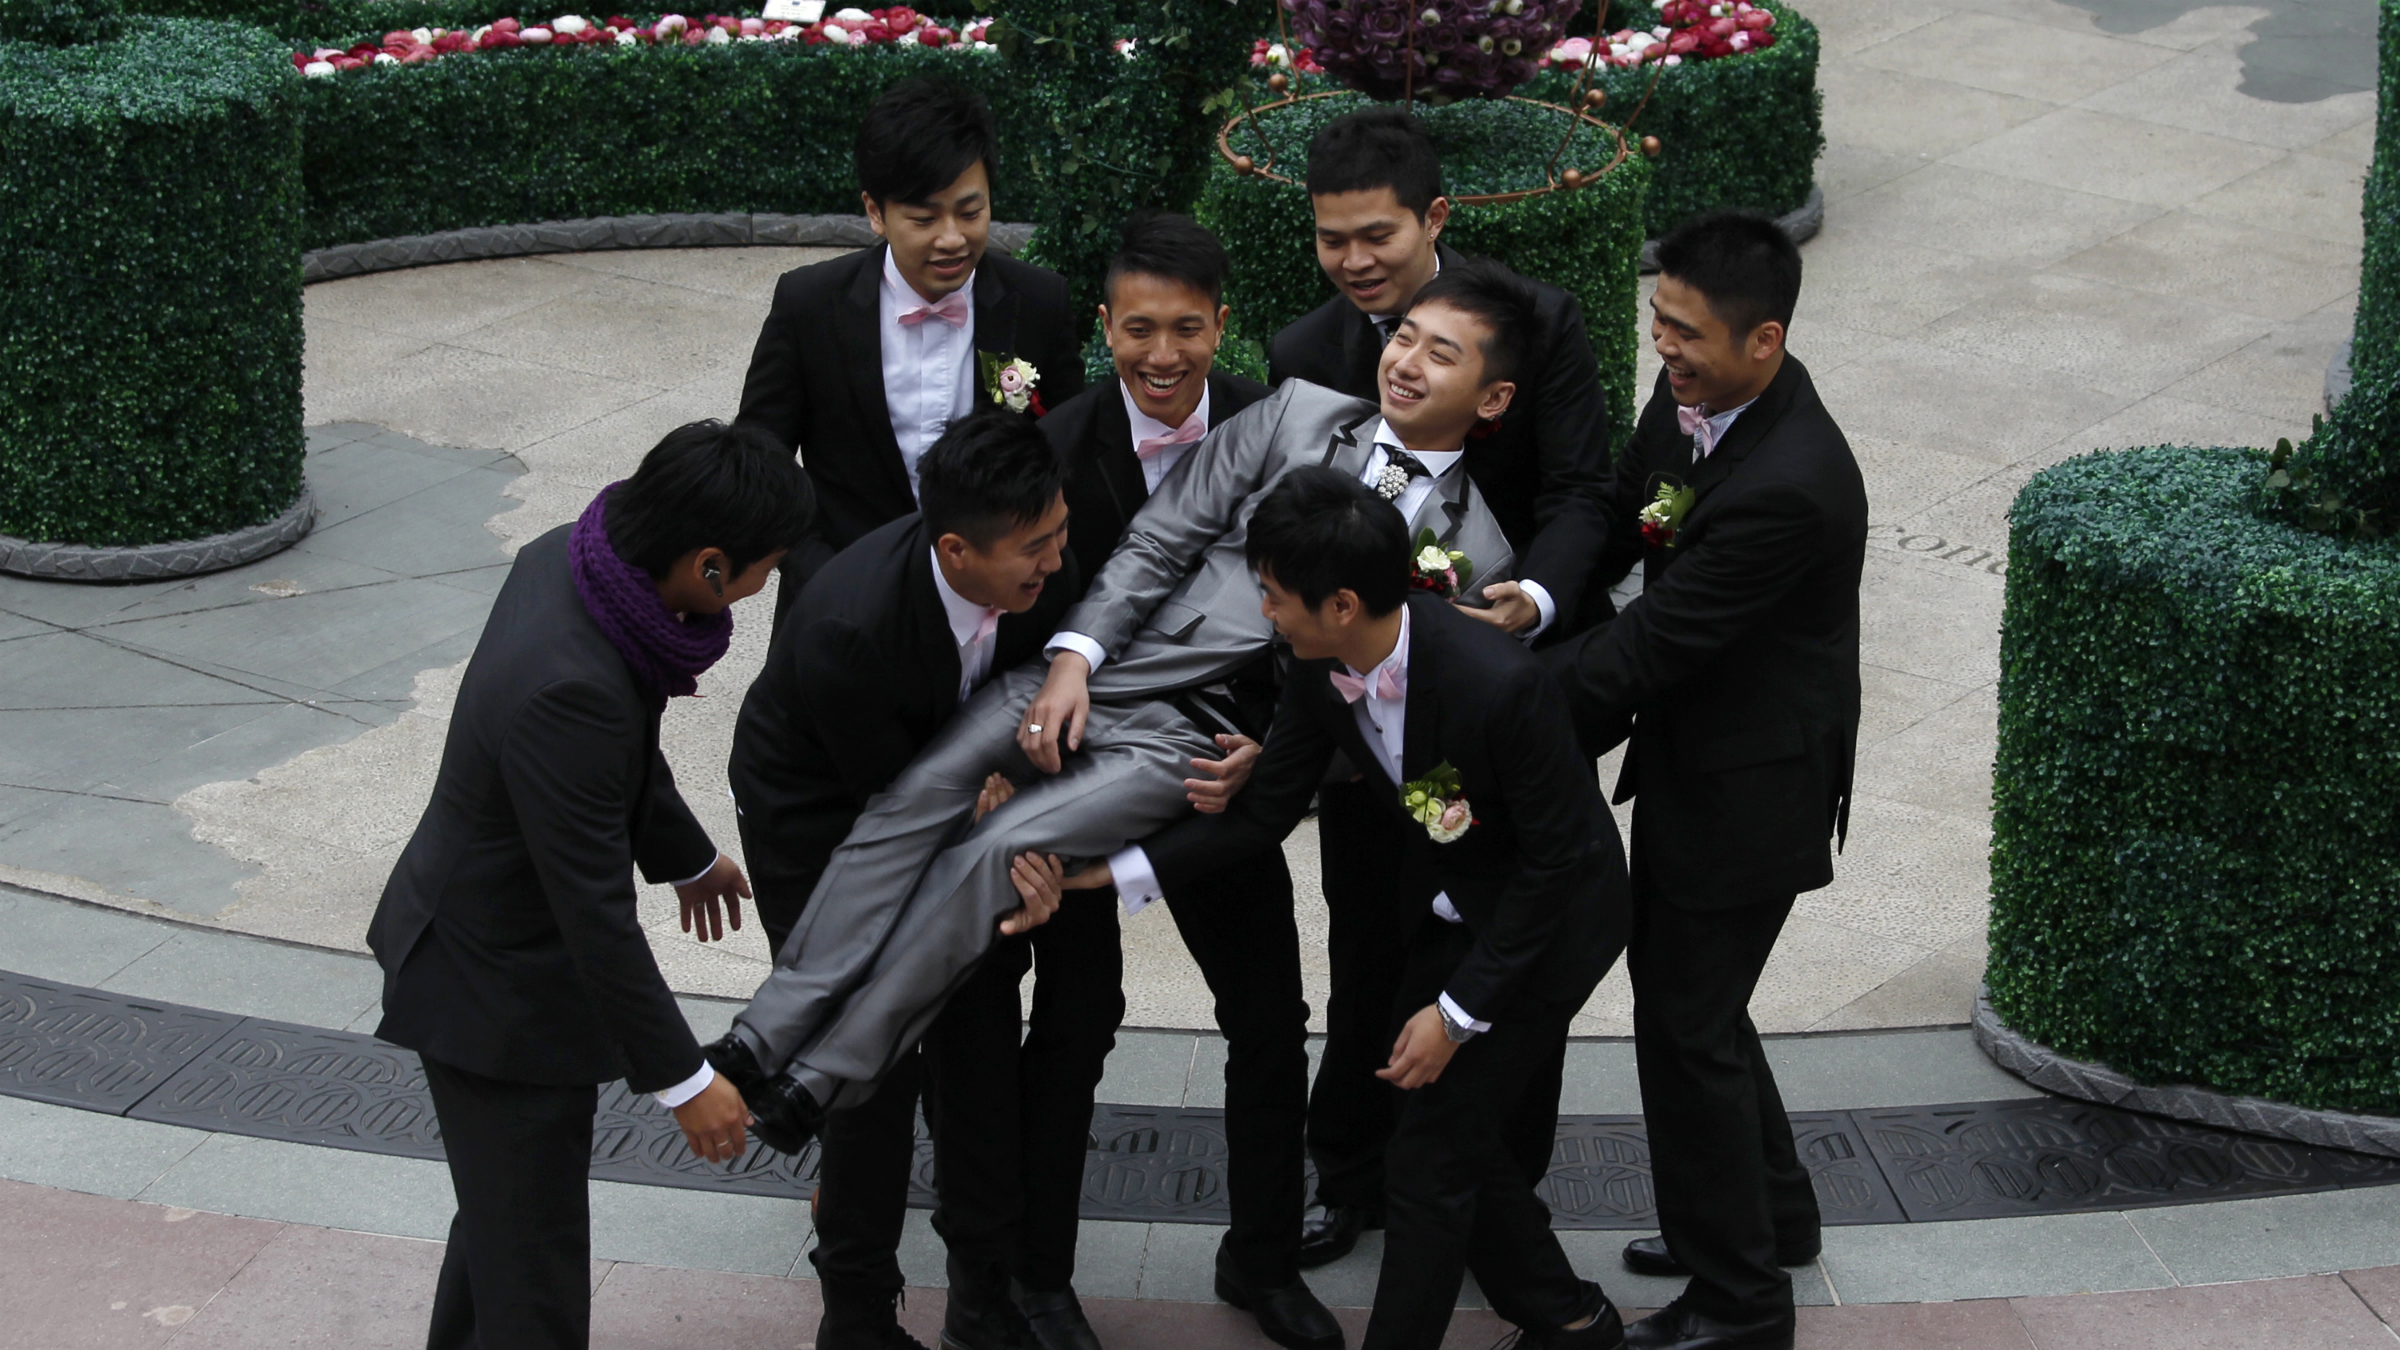 A bridegroom is carried by his friends during his wedding celebration on Valentine's Day in Hong Kong February 14, 2011. REUTERS/Bobby Yip